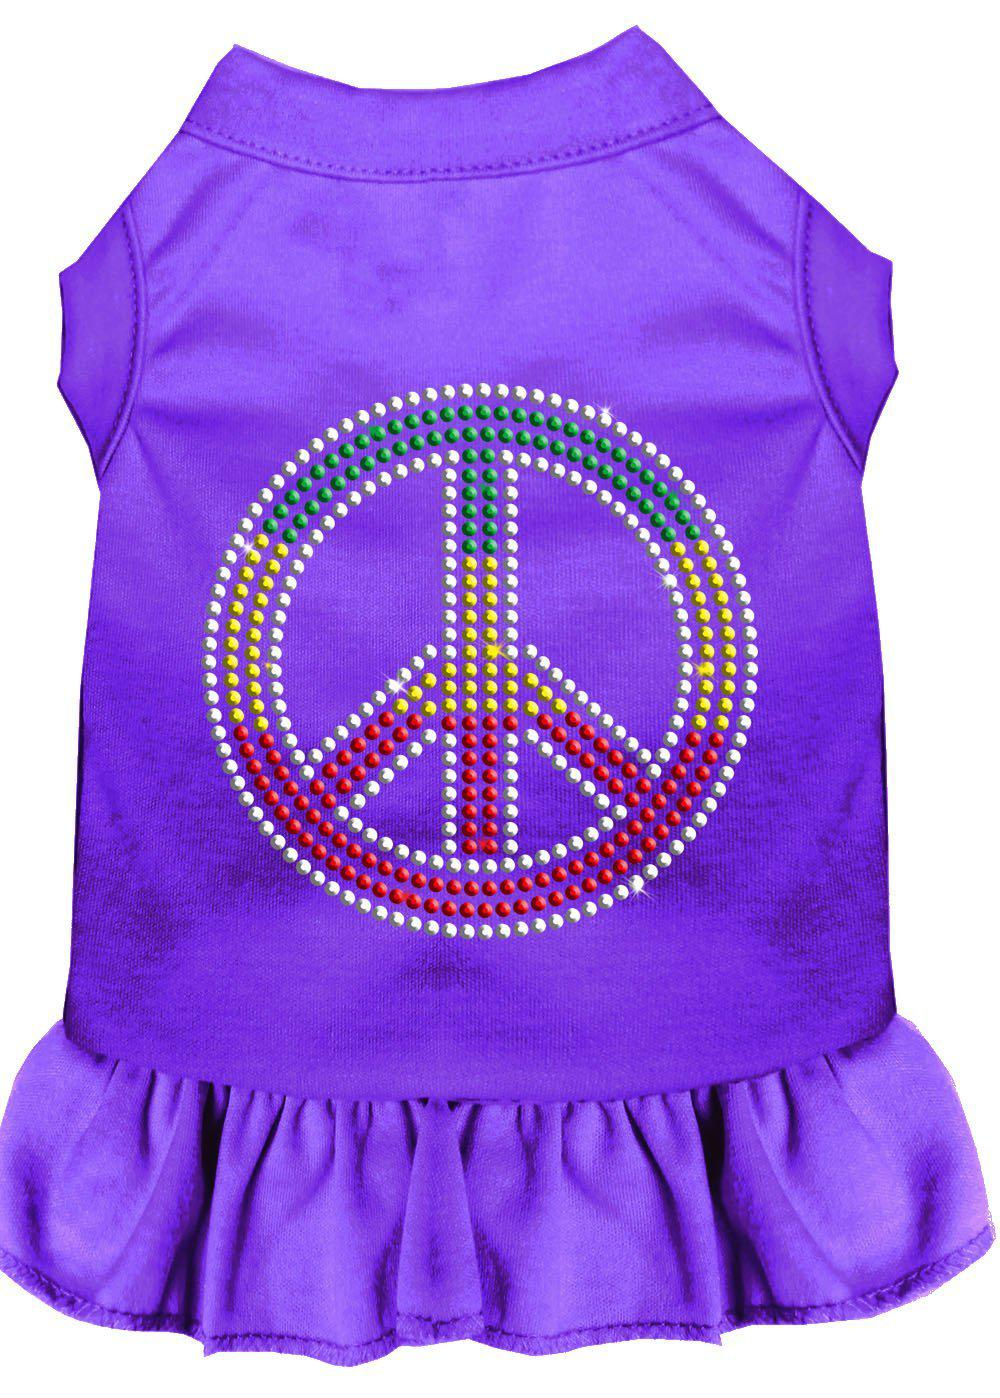 Rhinestone Rasta Peace Dress Purple-Dog Clothing-Bella's PetStor